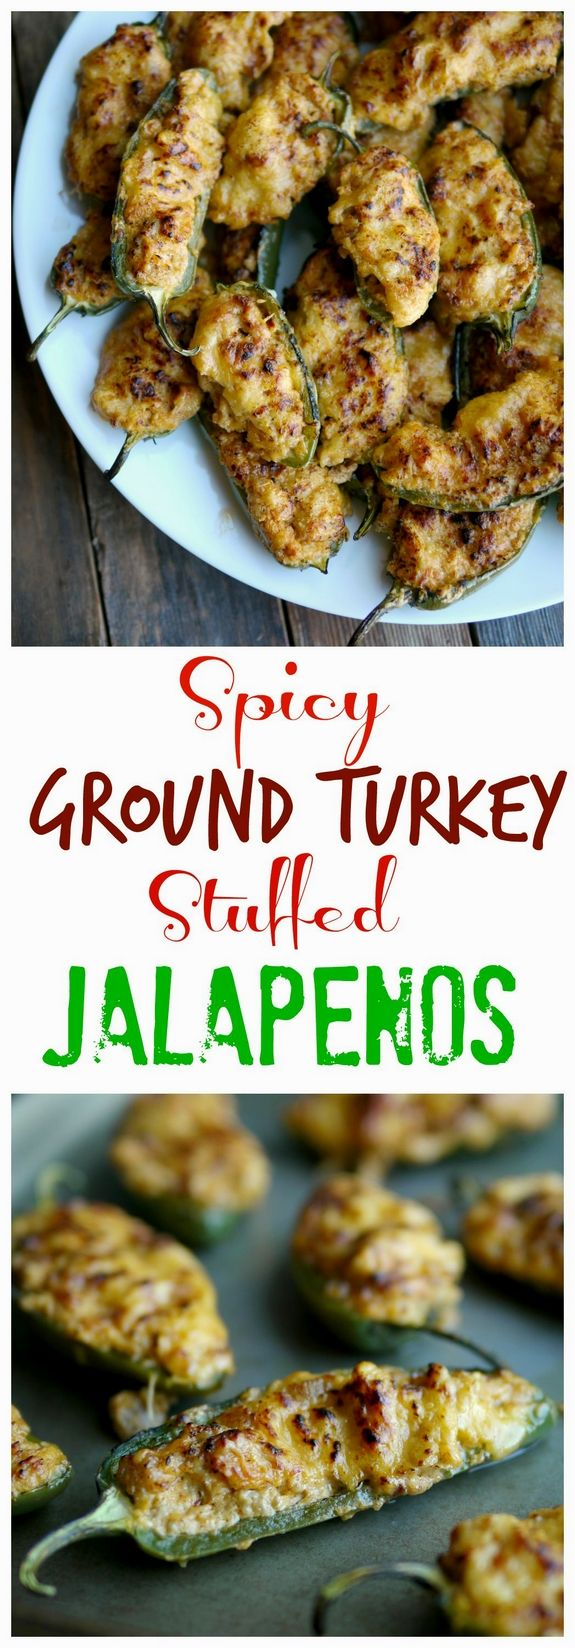 Enjoy all of the flavor of stuffed jalapenos in this healthier version of a game day favorite. TasteOrganicTurkey Turkey Tuesday from NoblePig.com  AD @FosterFarms